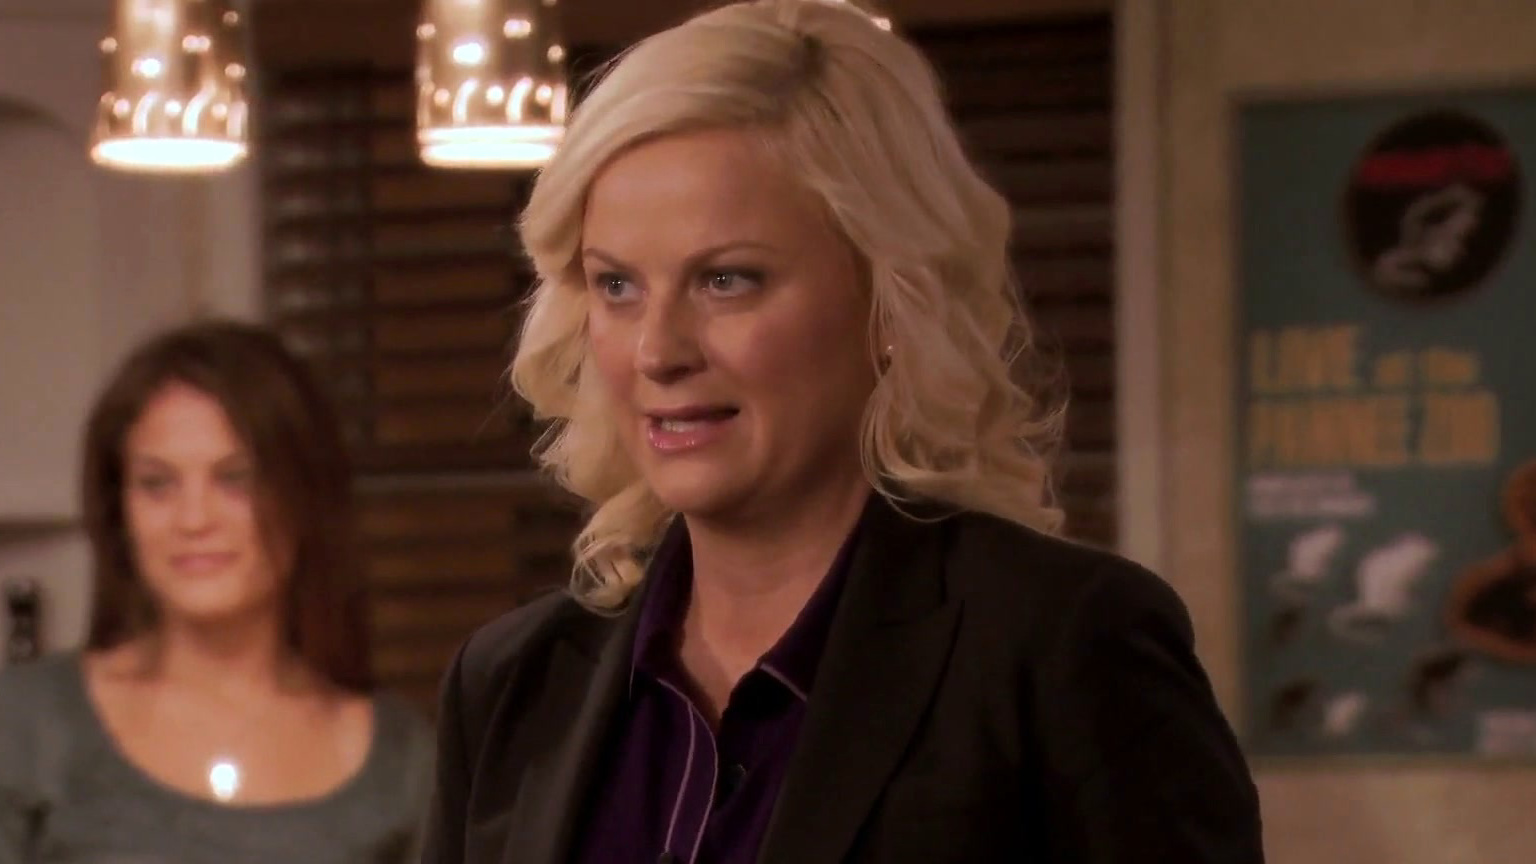 Parks And Recreation: Andy And April's Fancy Party